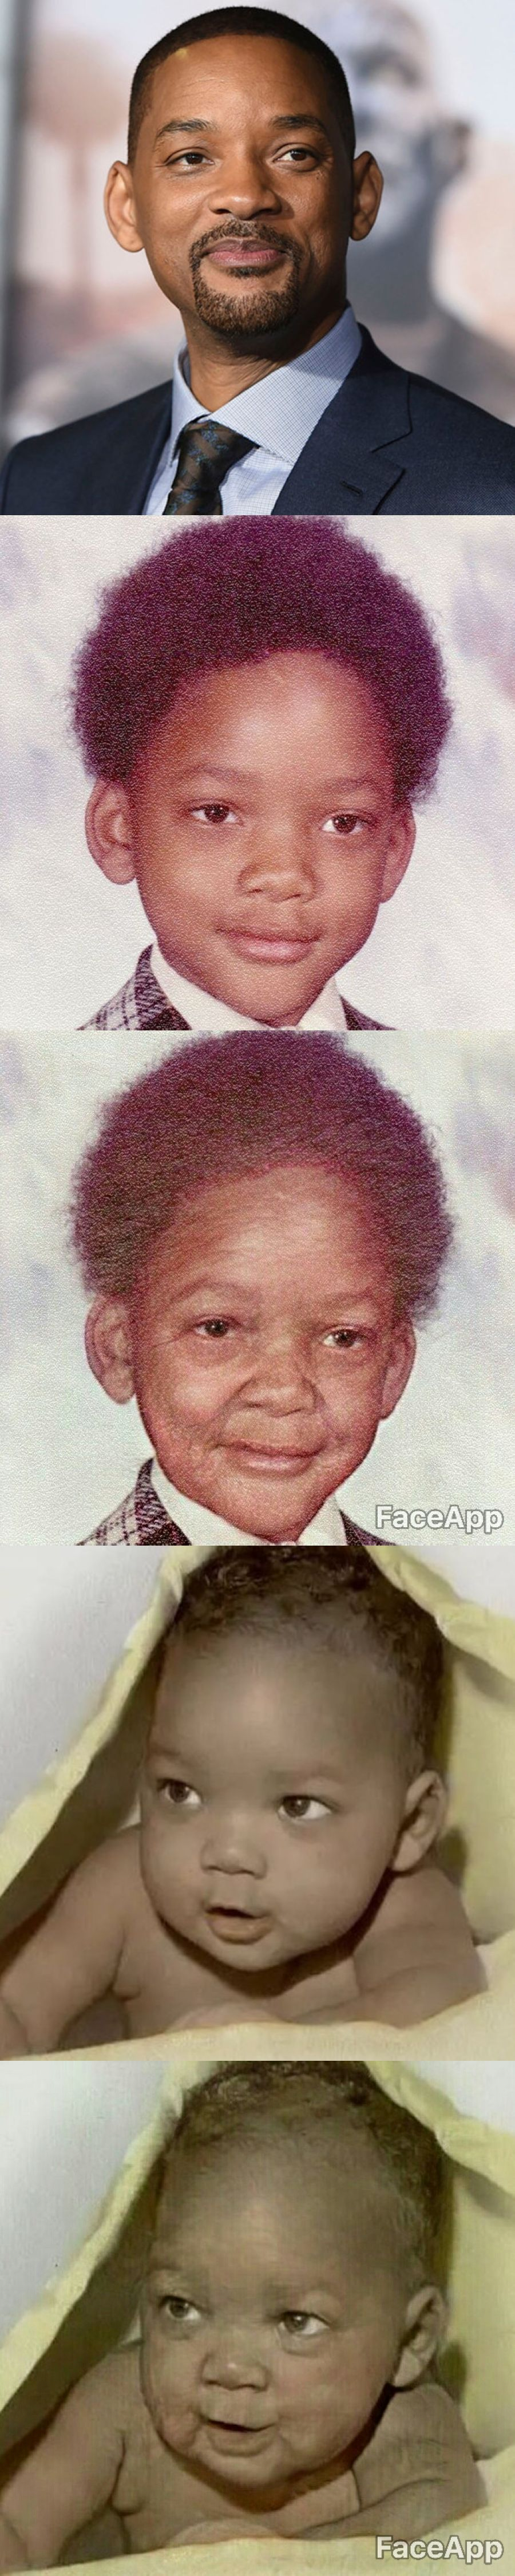 will smith faceapp